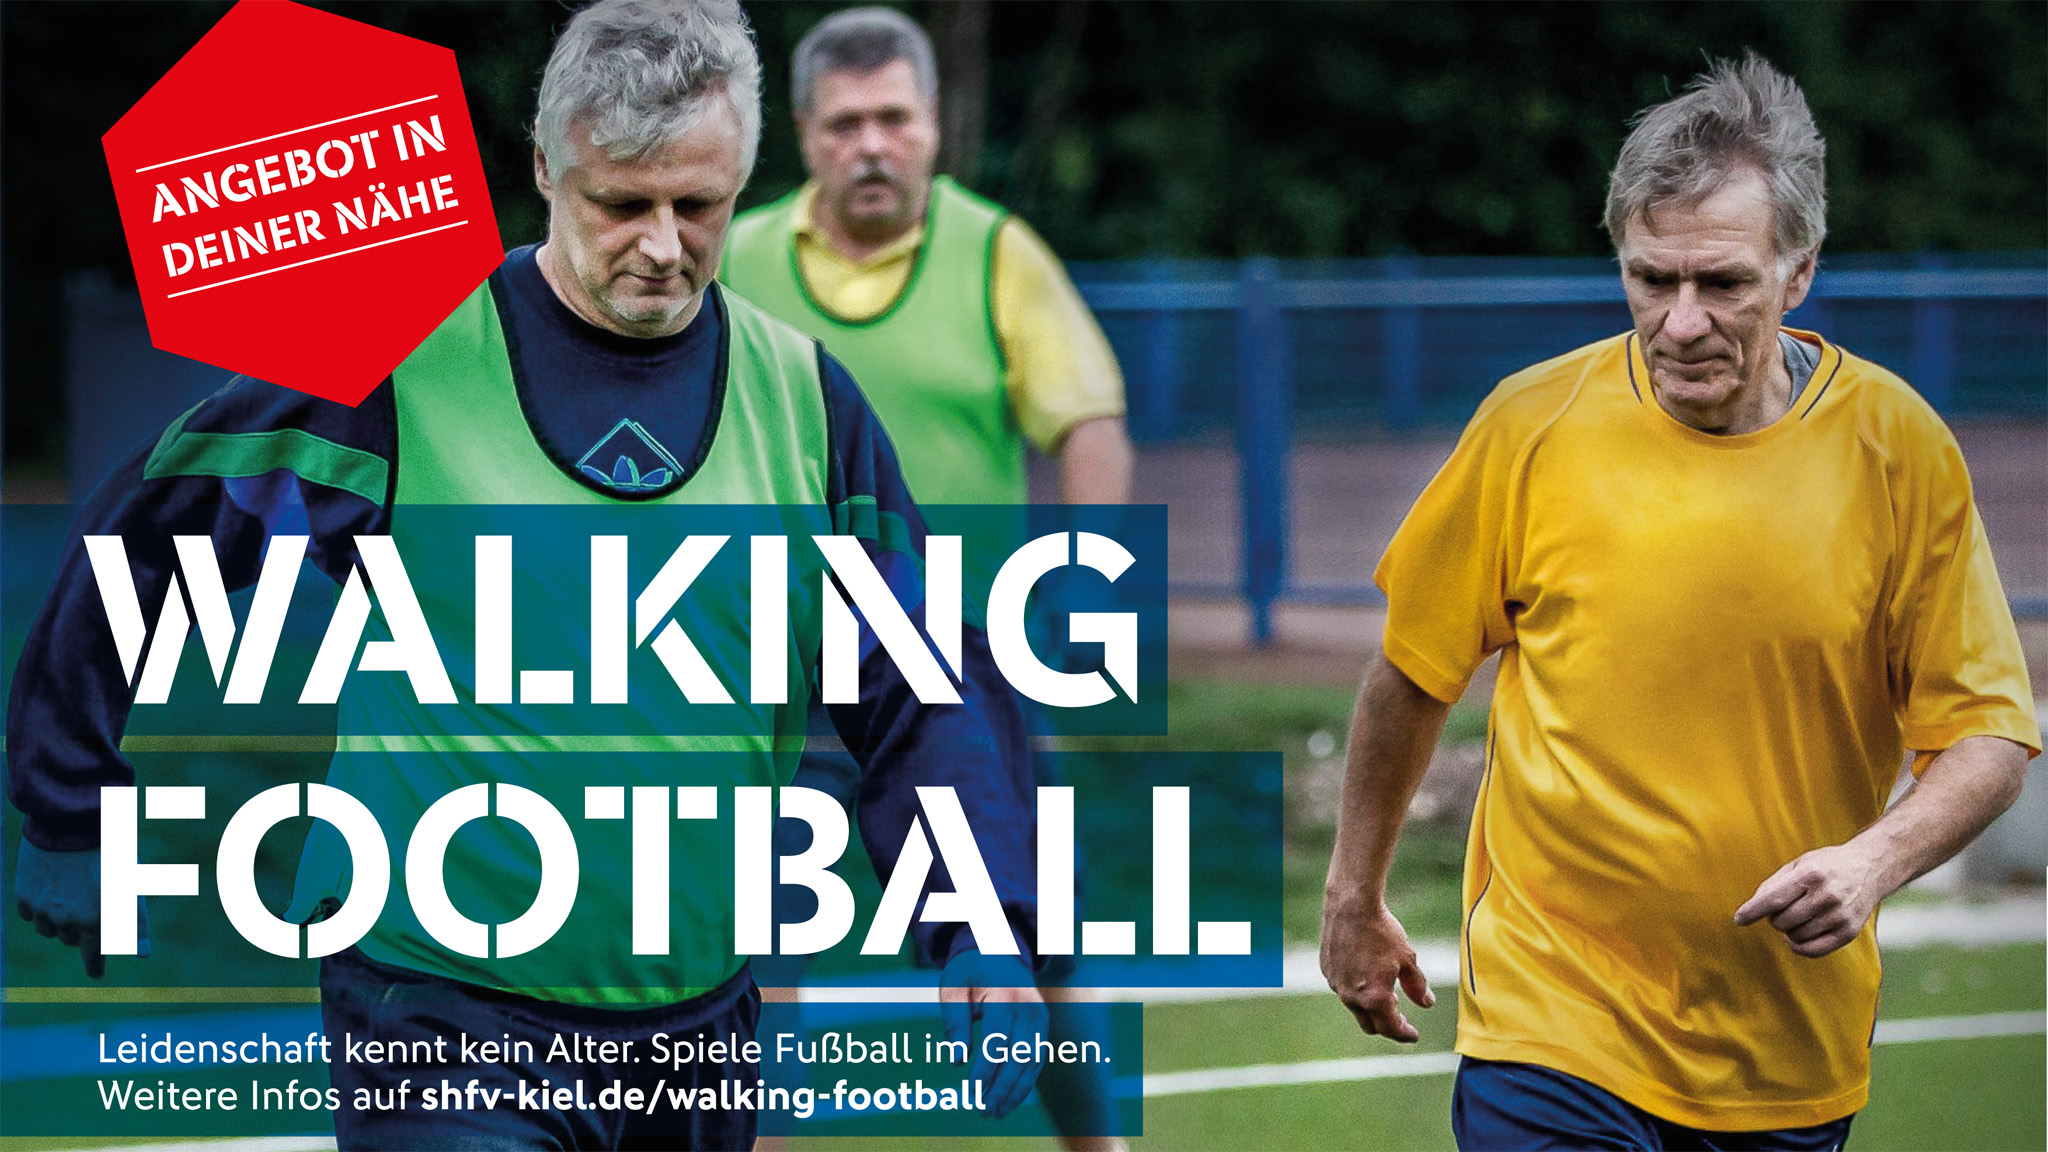 Geht ab: Walking-Football montags ab 17:30 Uhr